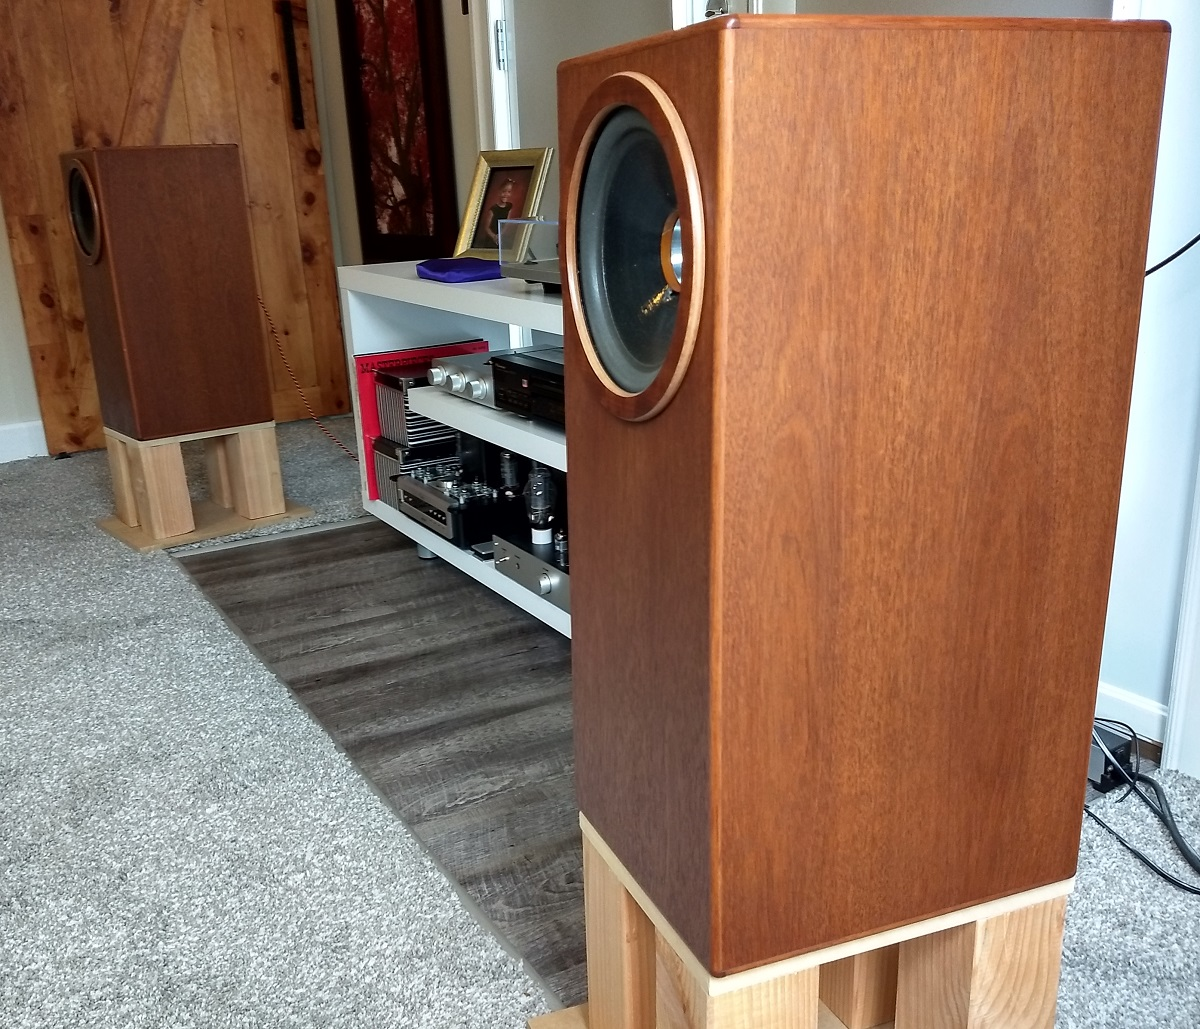 Review: The Coherent Model 8 – A Speaker For (Real) Life